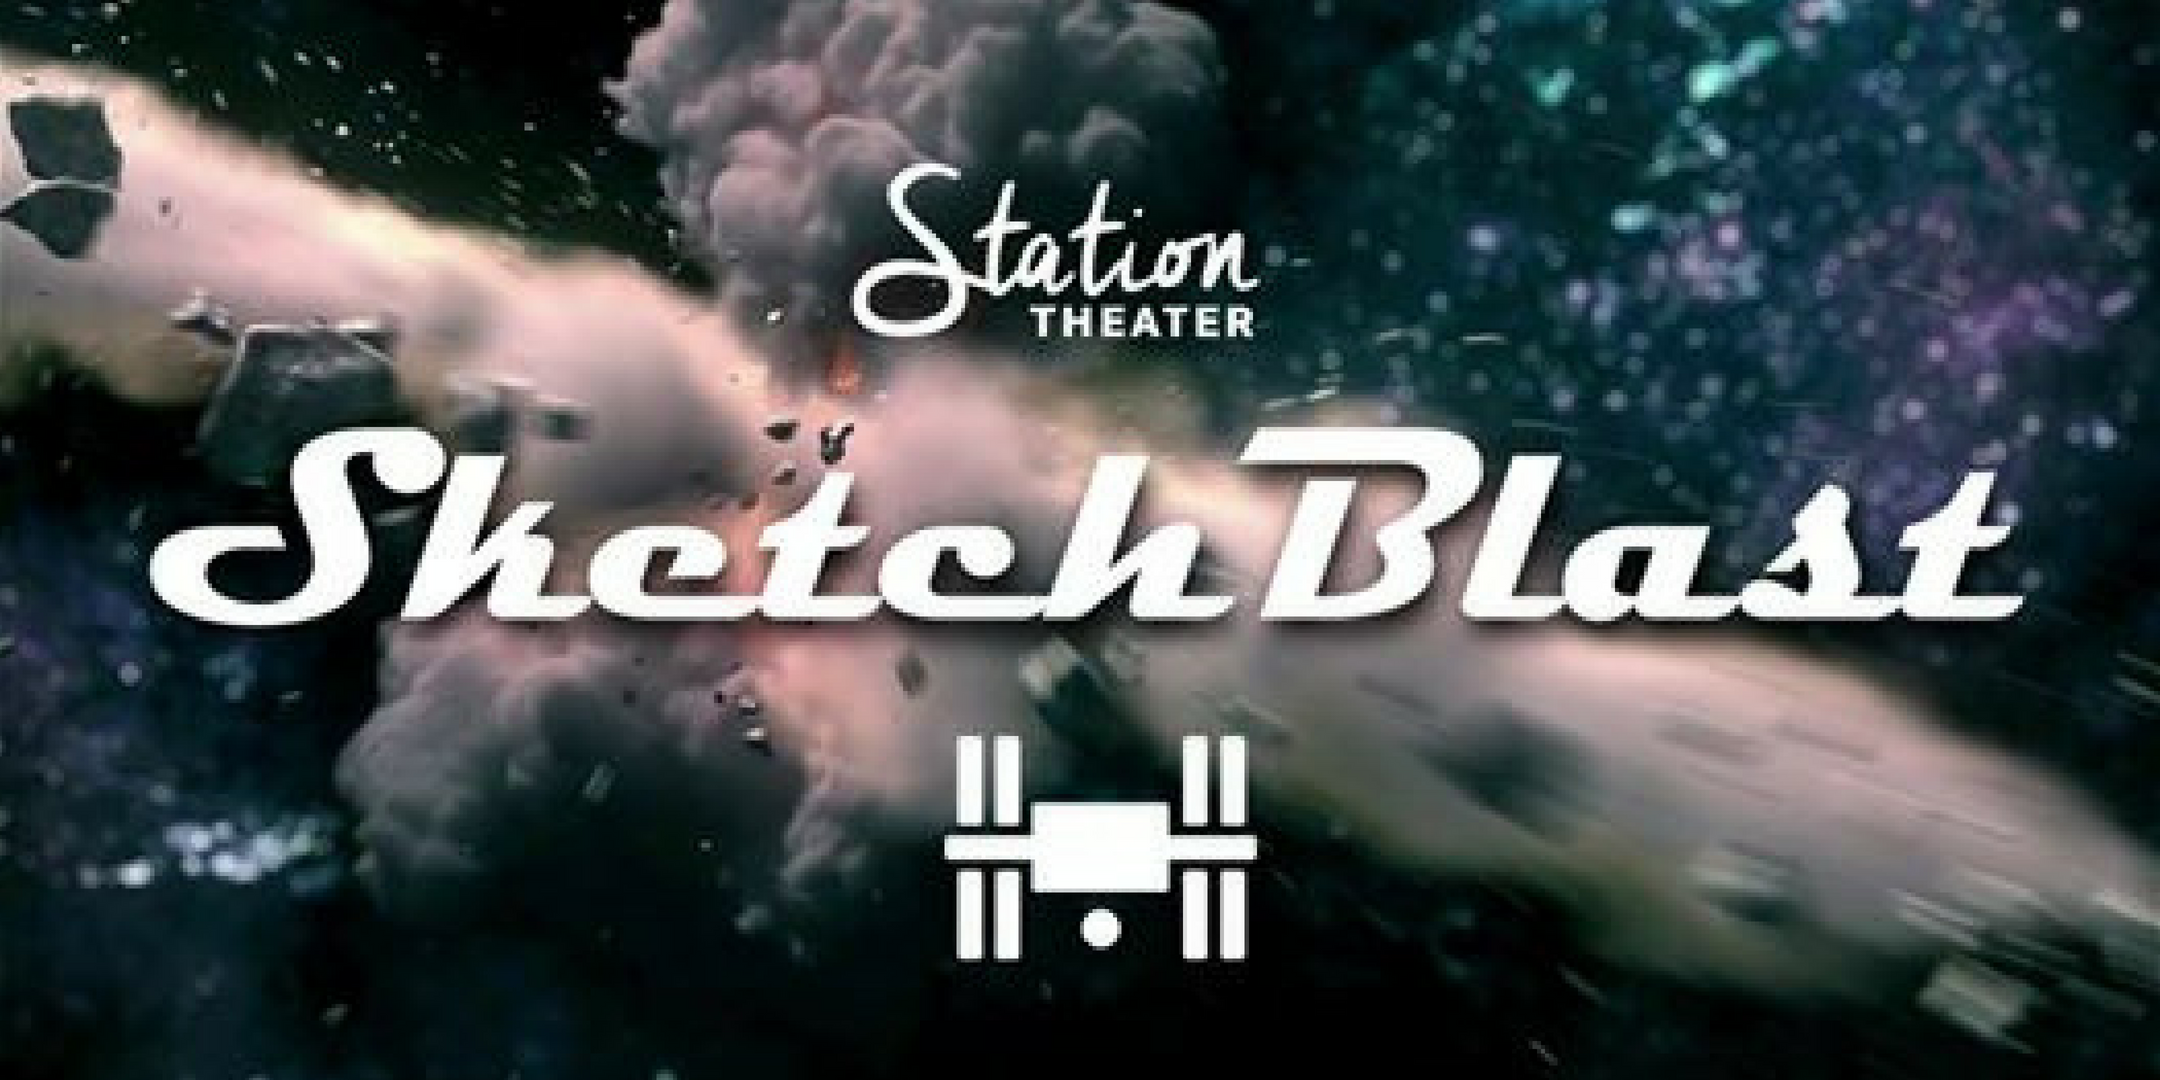 SKETCHBLAST  FRIDAYS 9:30PM